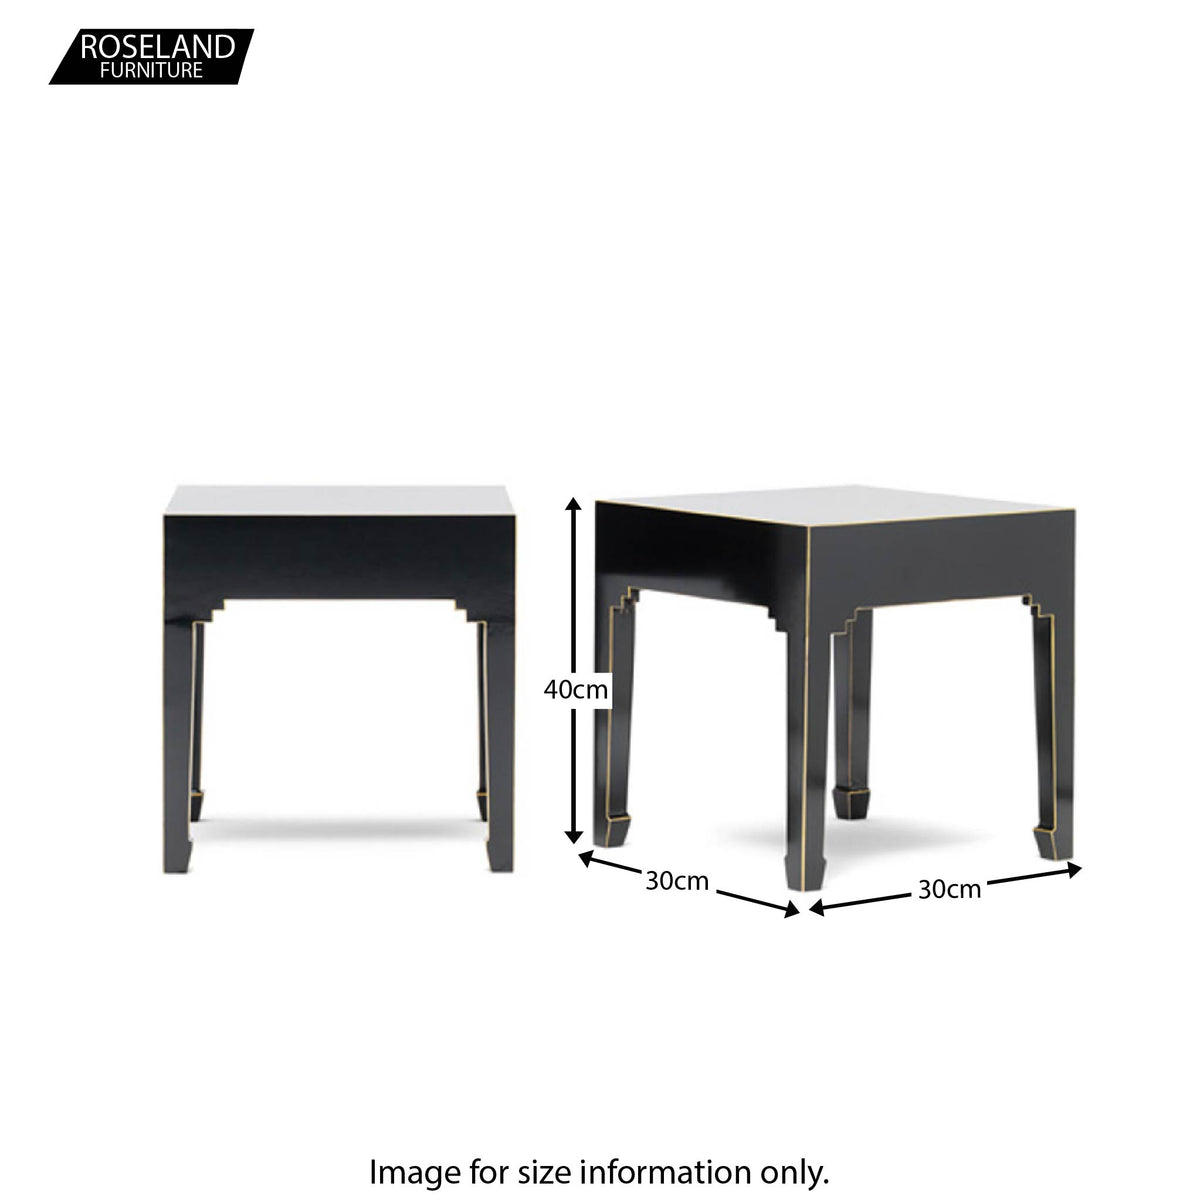 The Nine Schools Black Pair of Lamp Tables - Size Guide